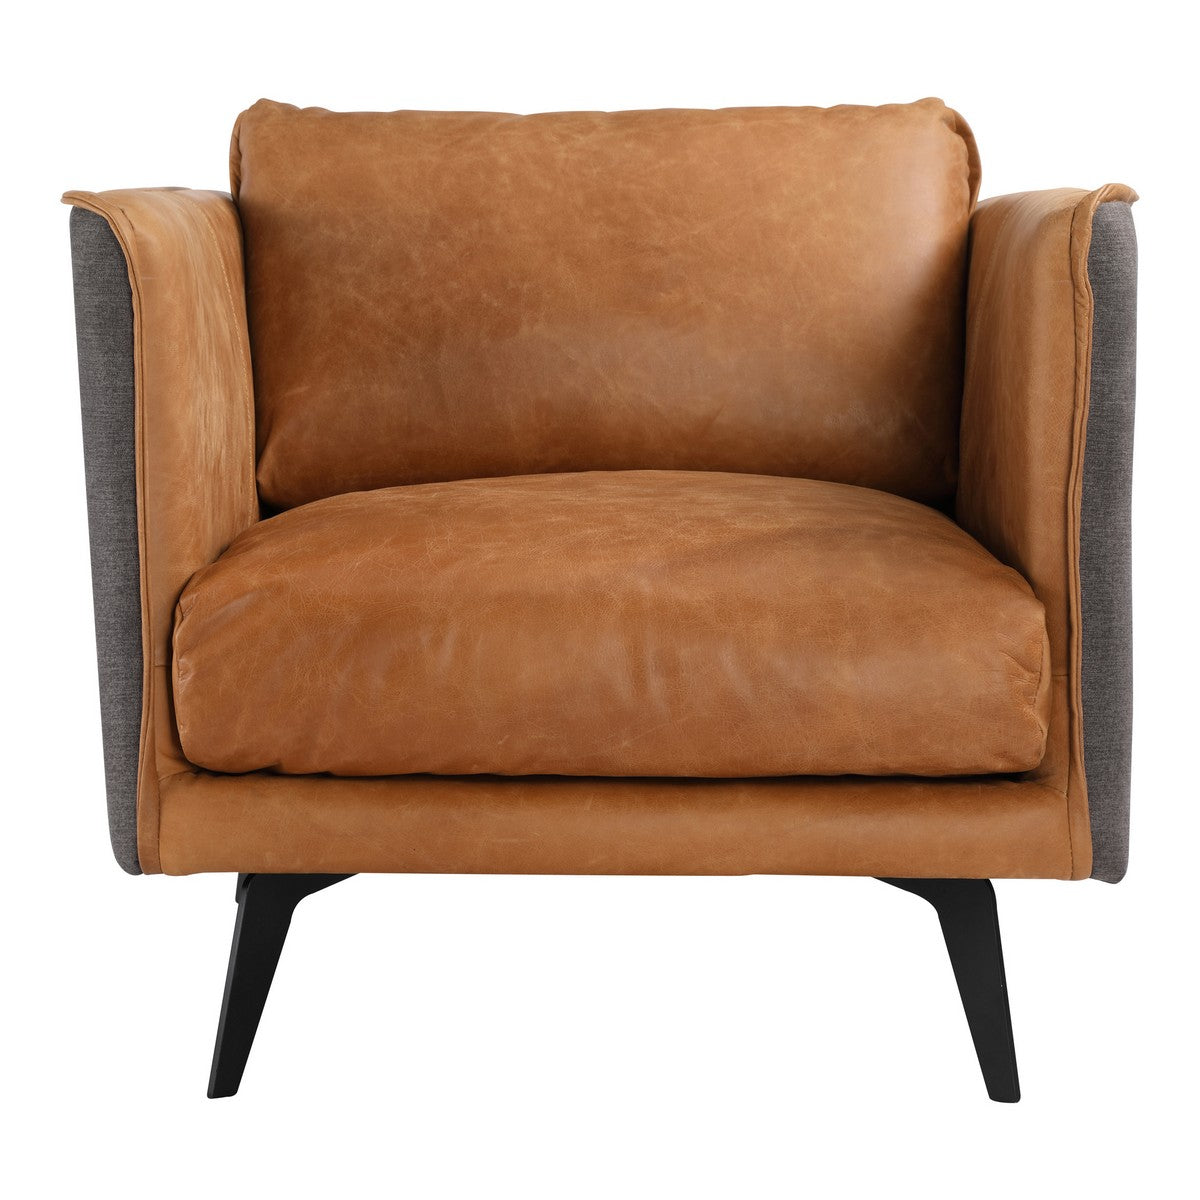 Moe's Home Collection Messina Leather Arm Chair Cognac - PK-1096-23 - Moe's Home Collection - lounge chairs - Minimal And Modern - 1